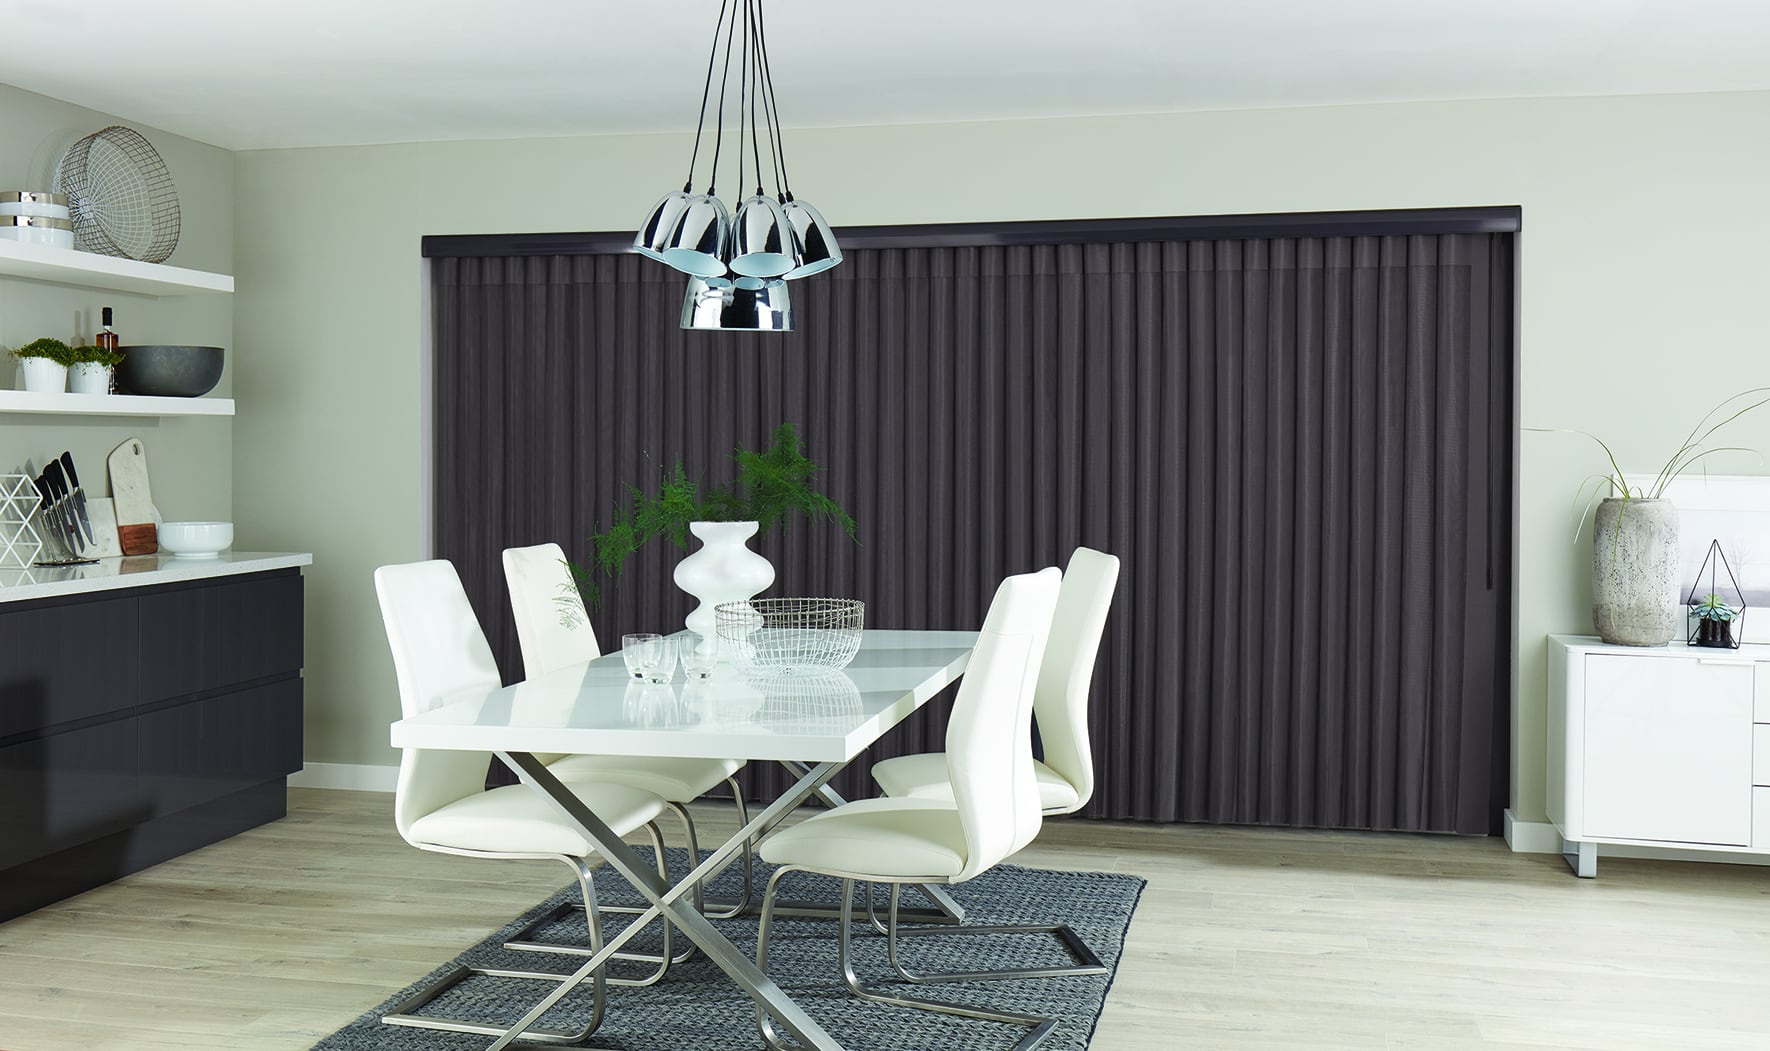 Allusion blinds in Pewter